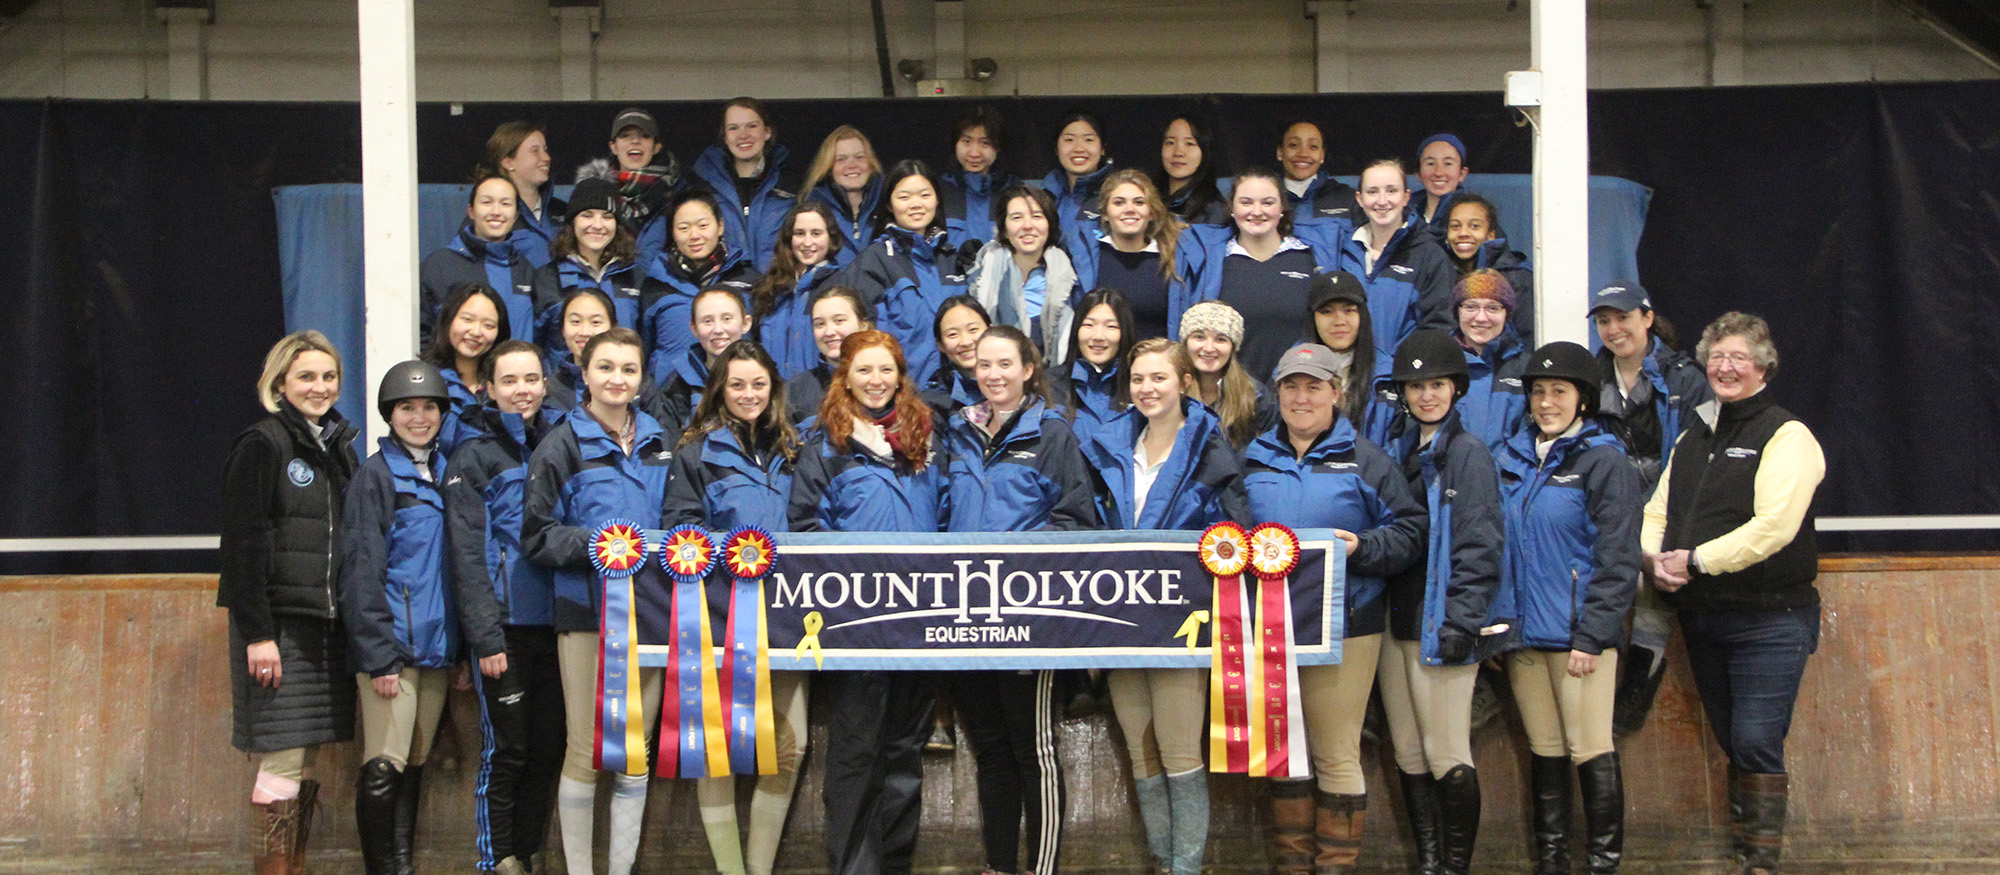 Group photo of the Lyons Equestrian Team following their victory at home on March 3, 2018.